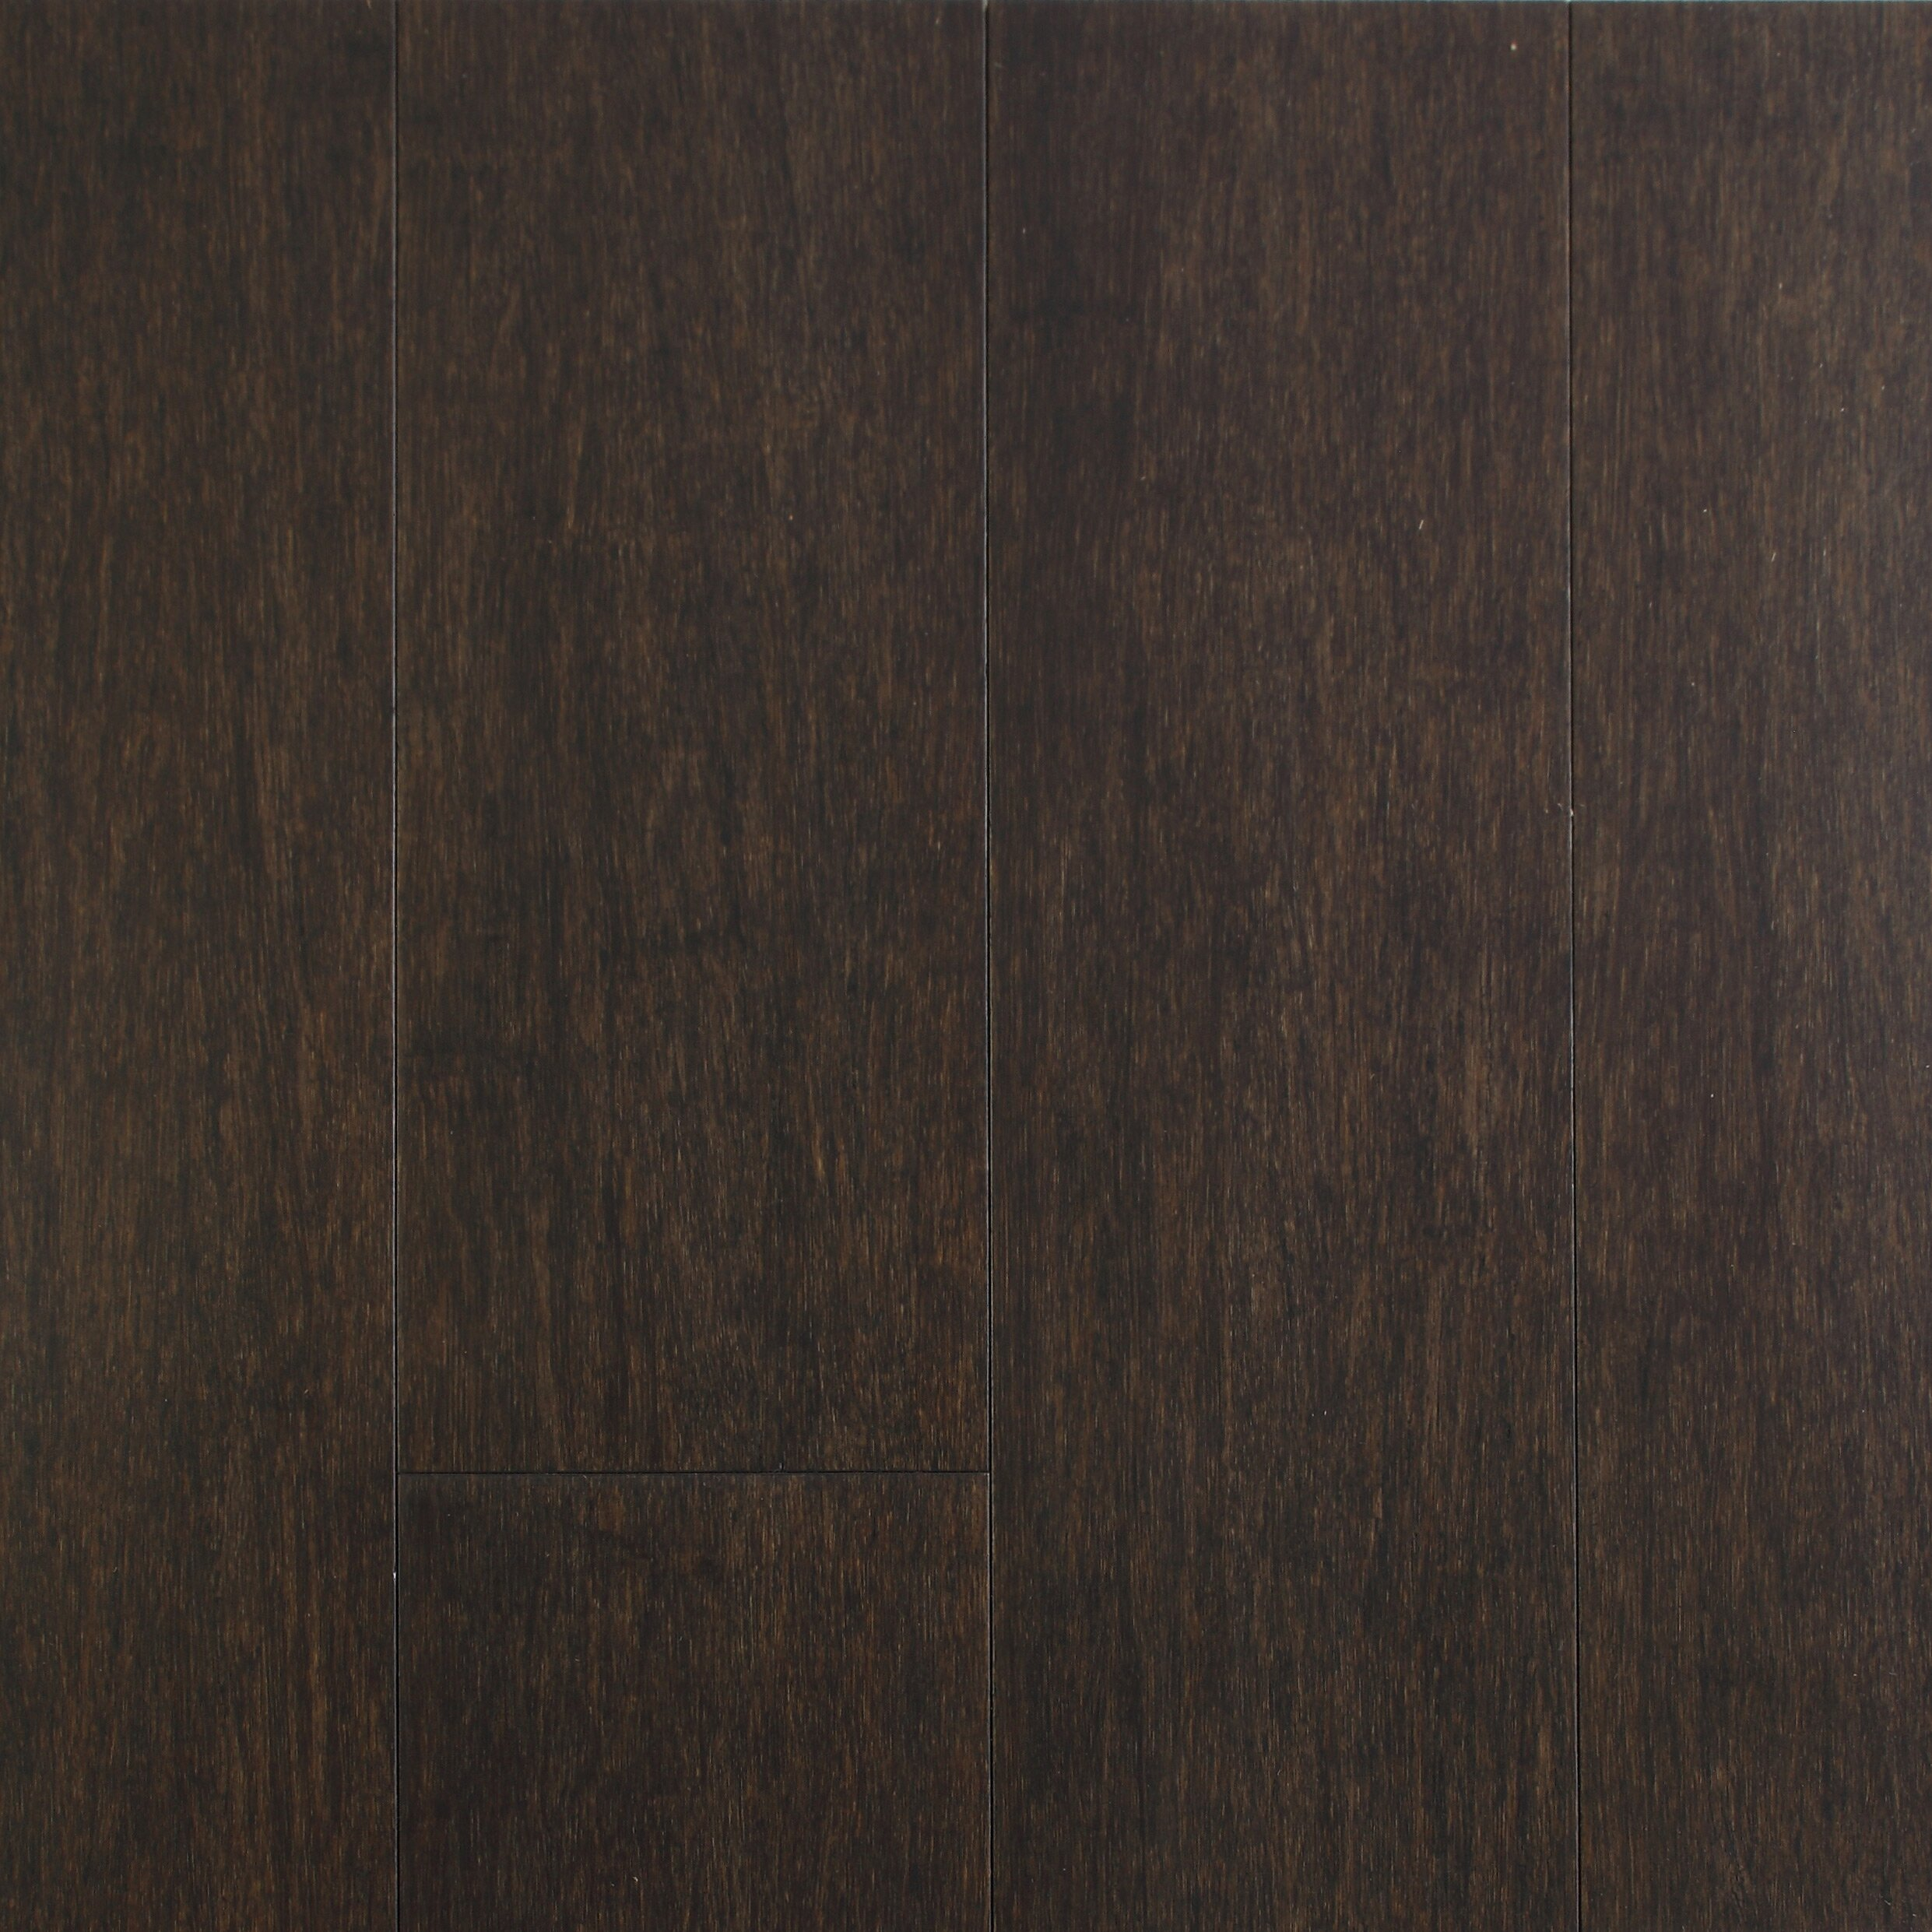 Grey Bamboo Flooring Grey Bamboo Flooring Uk Tone Gray Bamboo